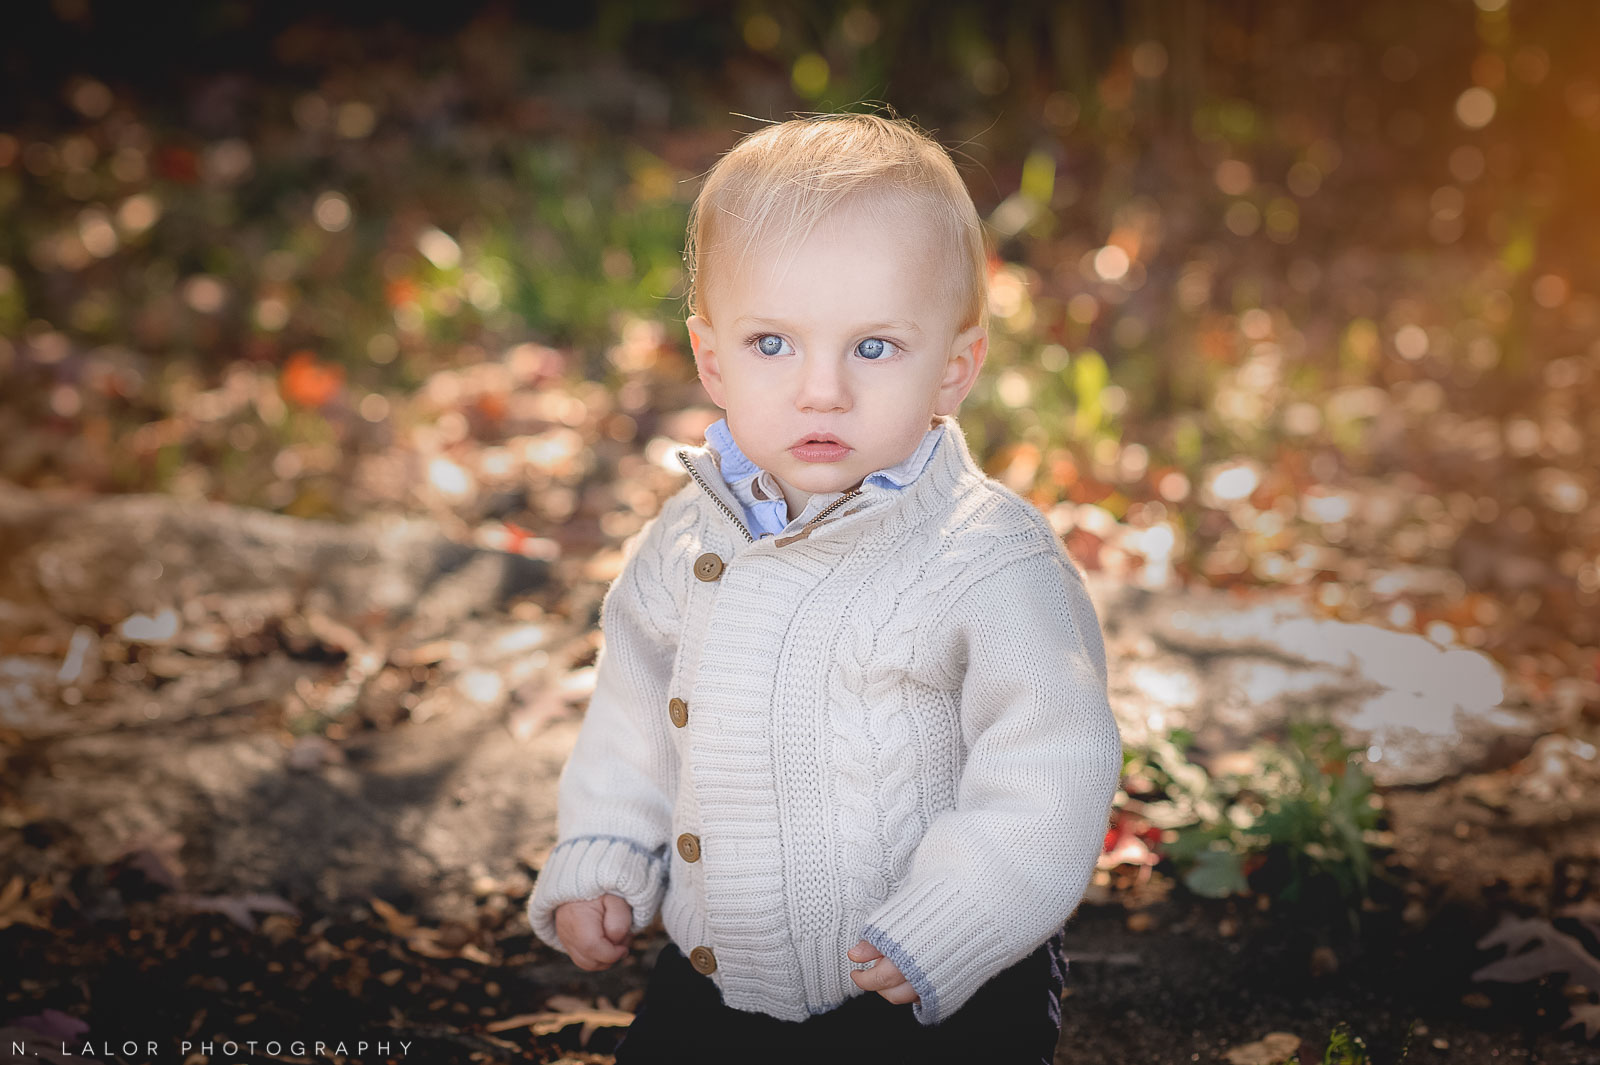 nlalor-photography-2014-styled-family-life-binney-park-old-greenwich-fall-15.jpg